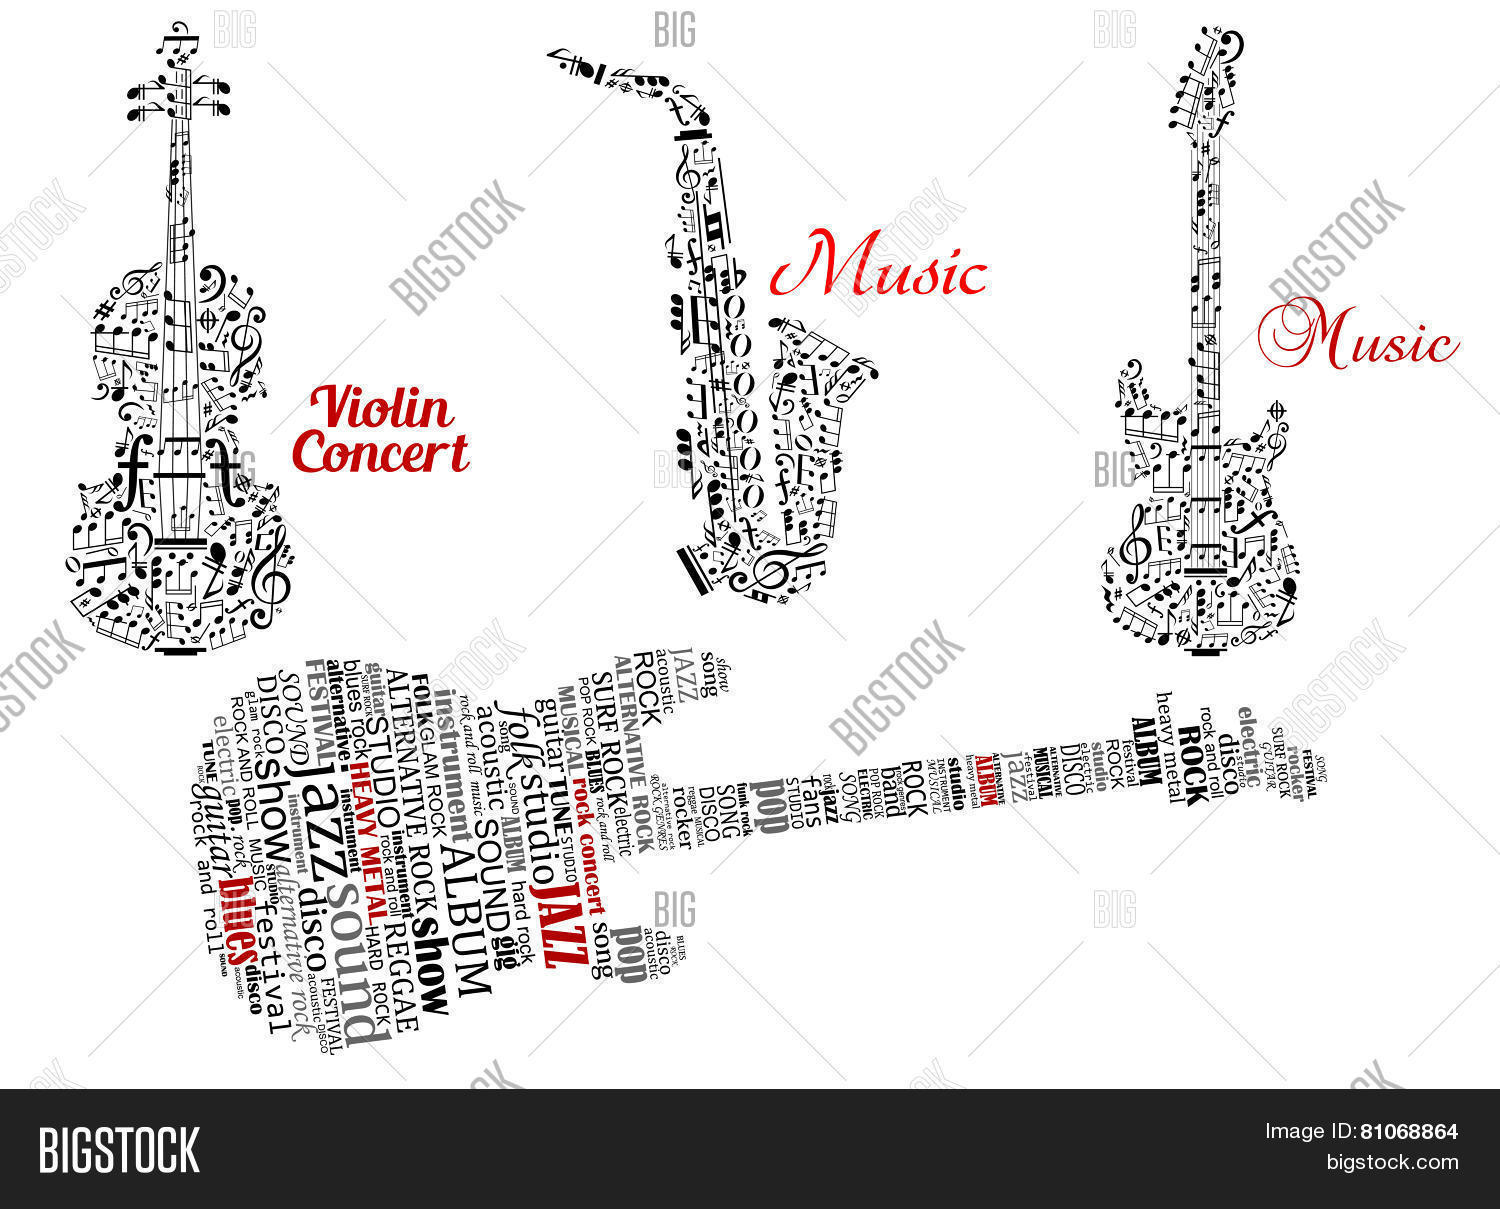 Word Clouds And Notes In Shape Of Guitars Violin And Saxophone